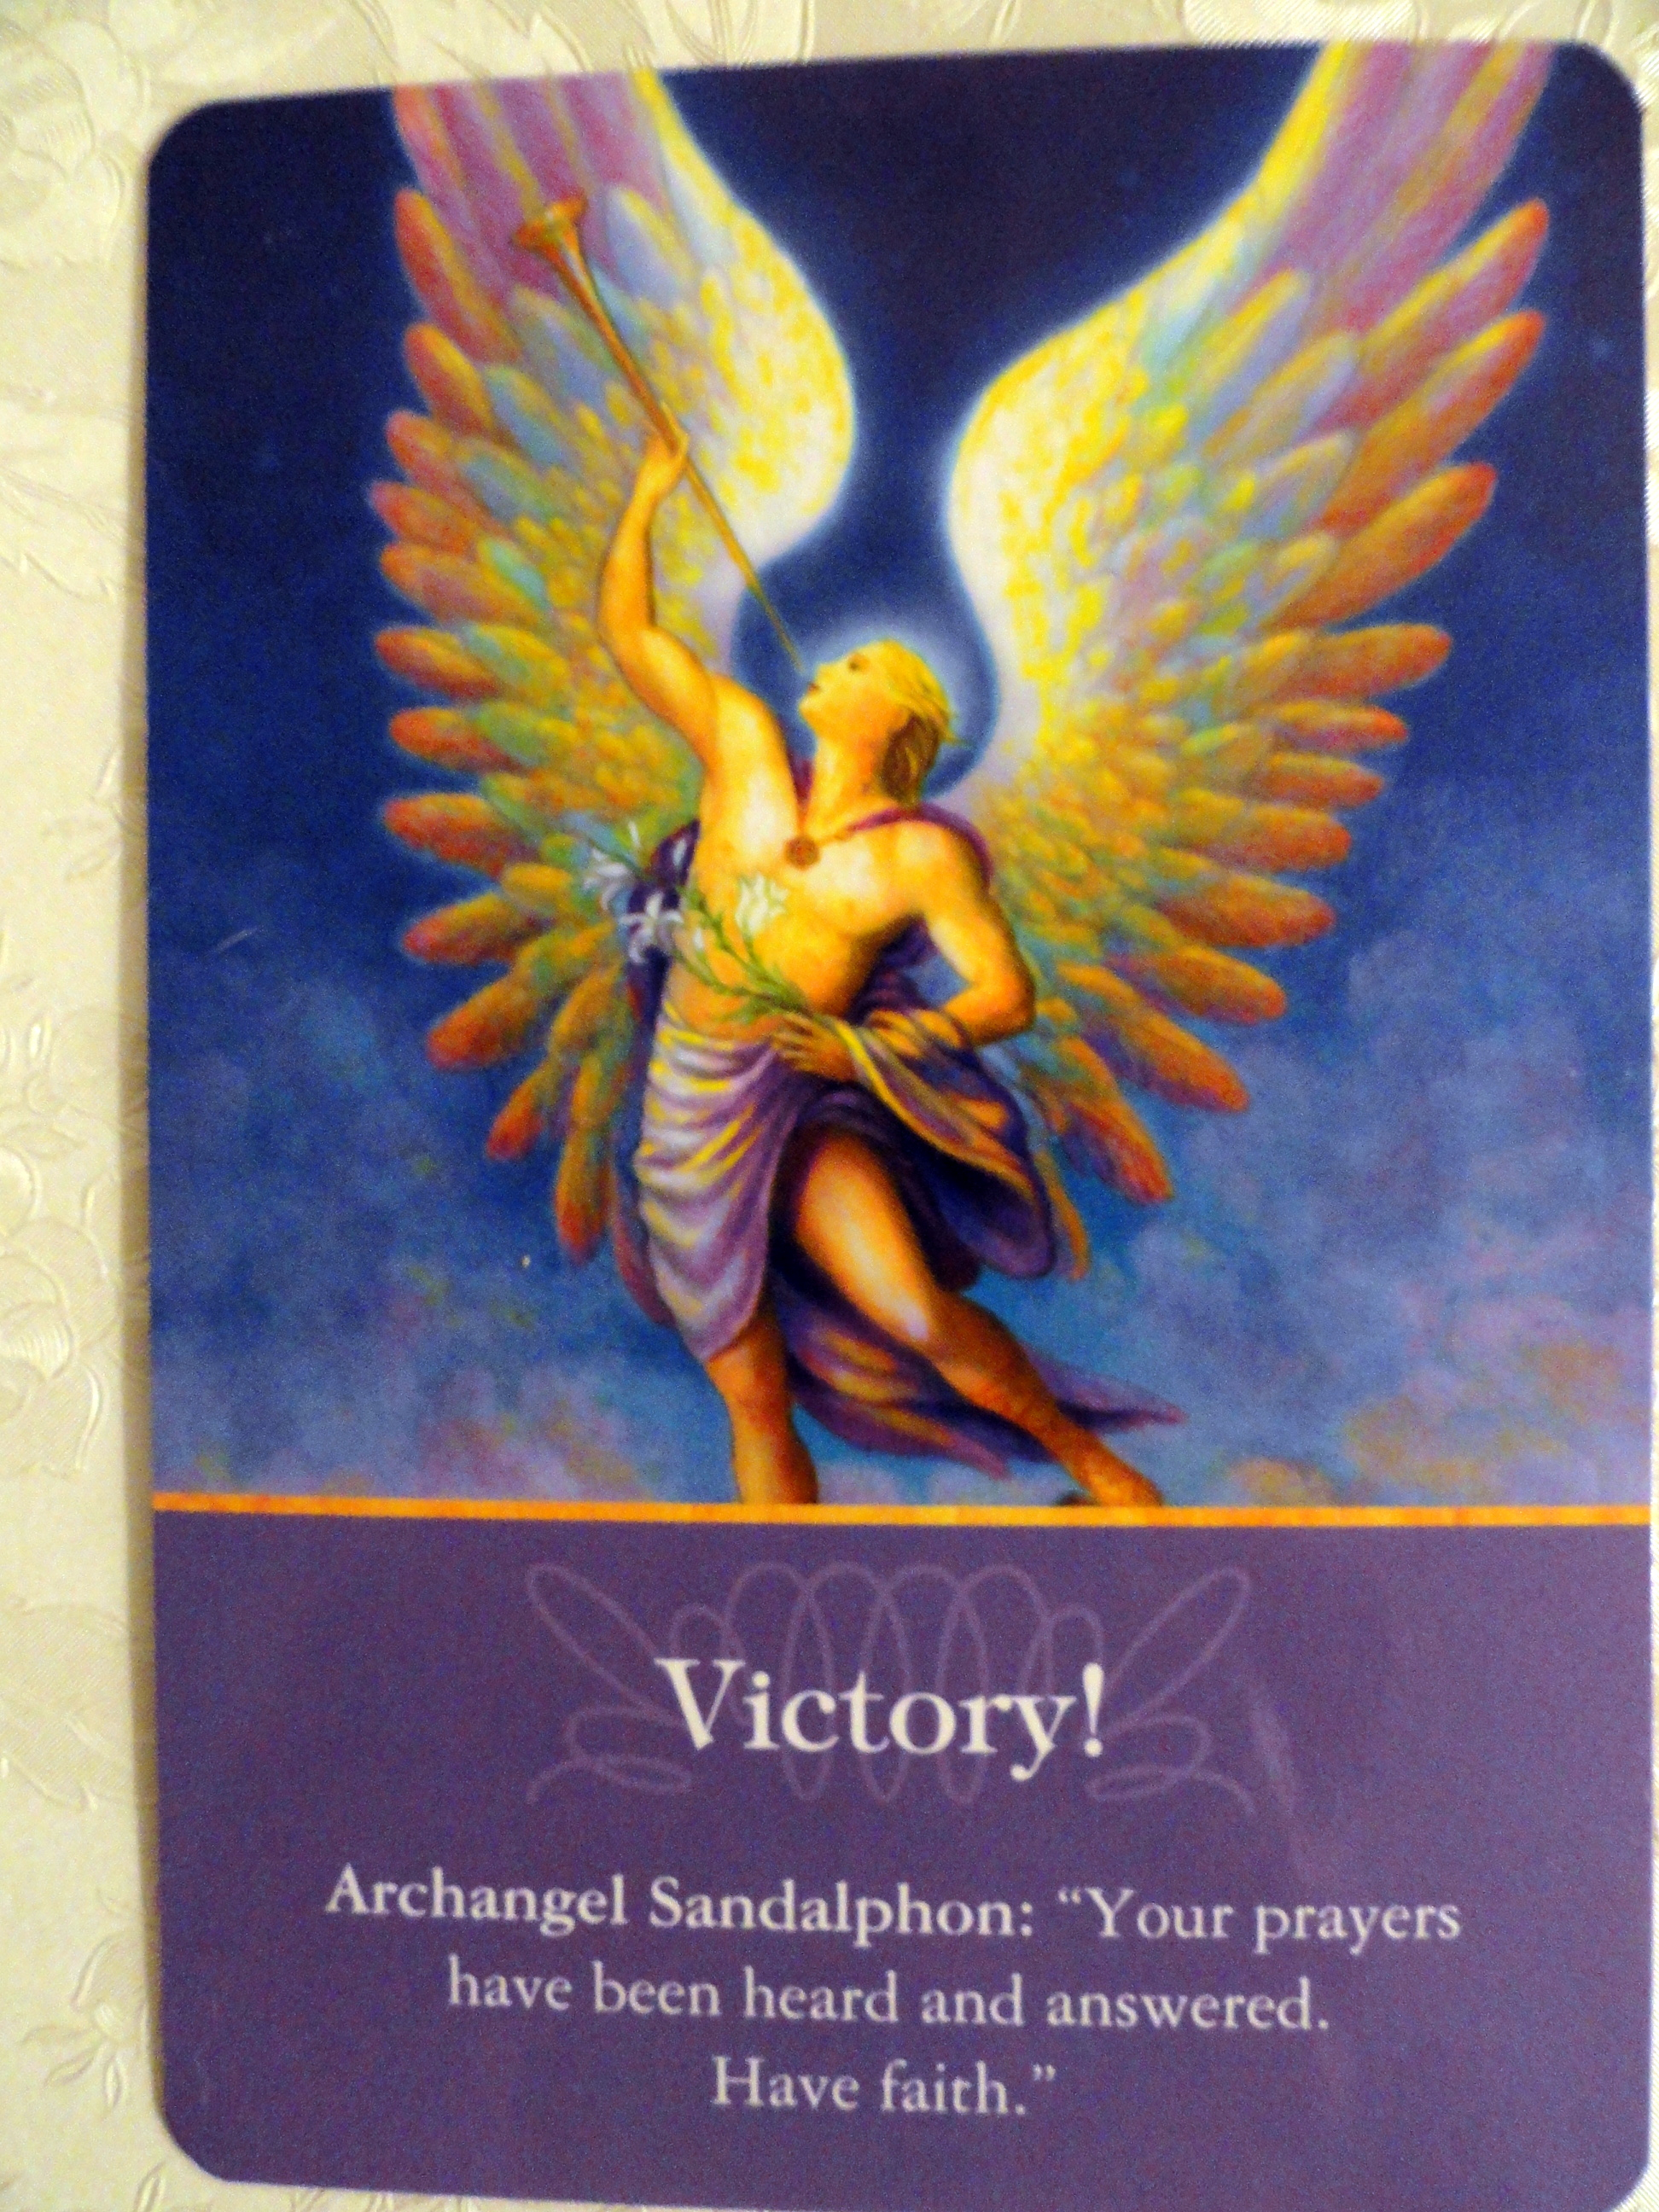 Archangel Oracle Divine Guidance: Weekly Angel Oracle Card Reading For December 2 Through 9